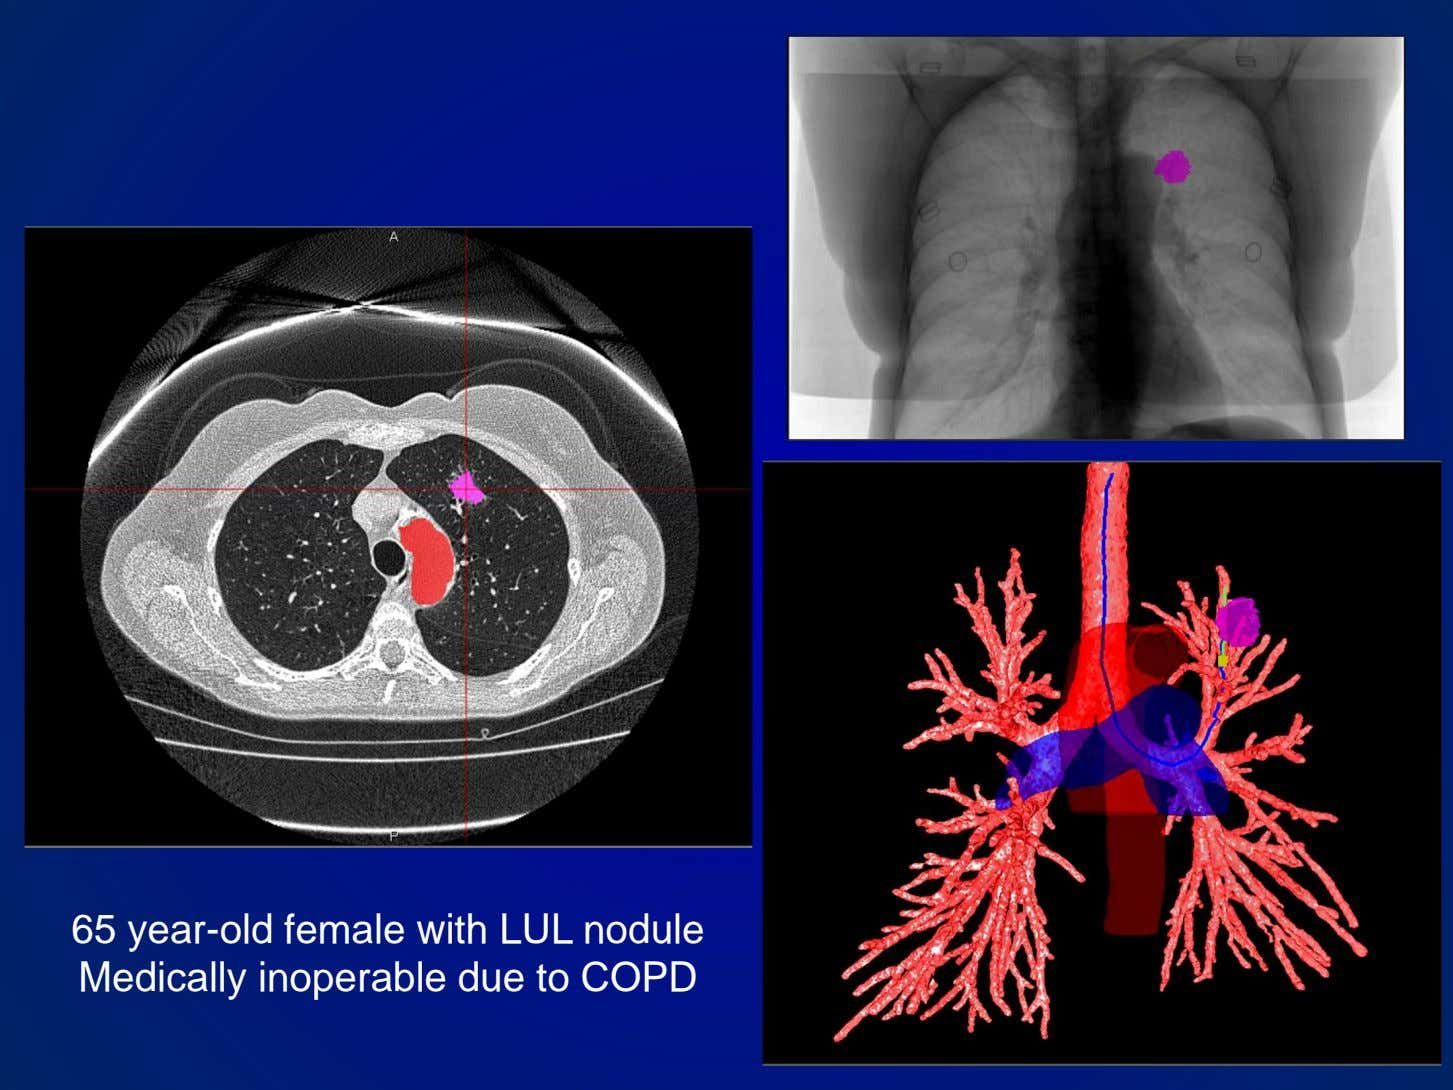 65 year-old female with LUL nodule Medically inoperable due to COPD